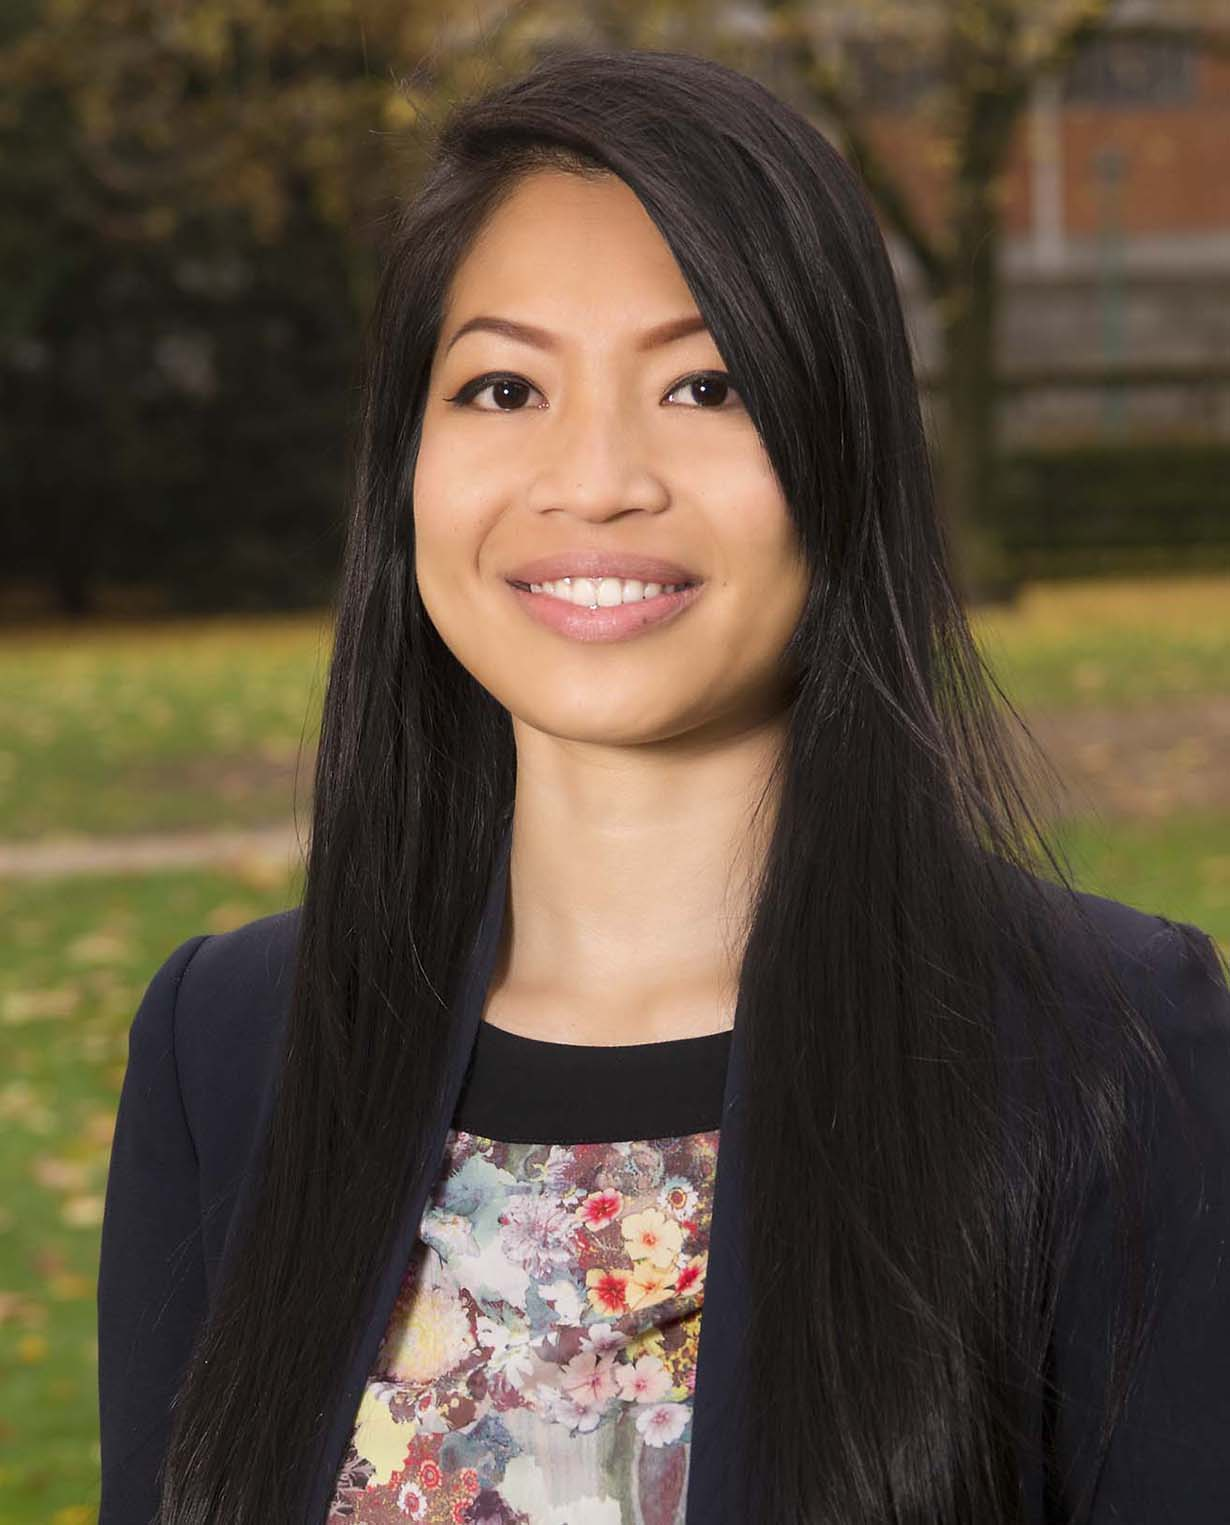 Mon Thach, Research Analyst